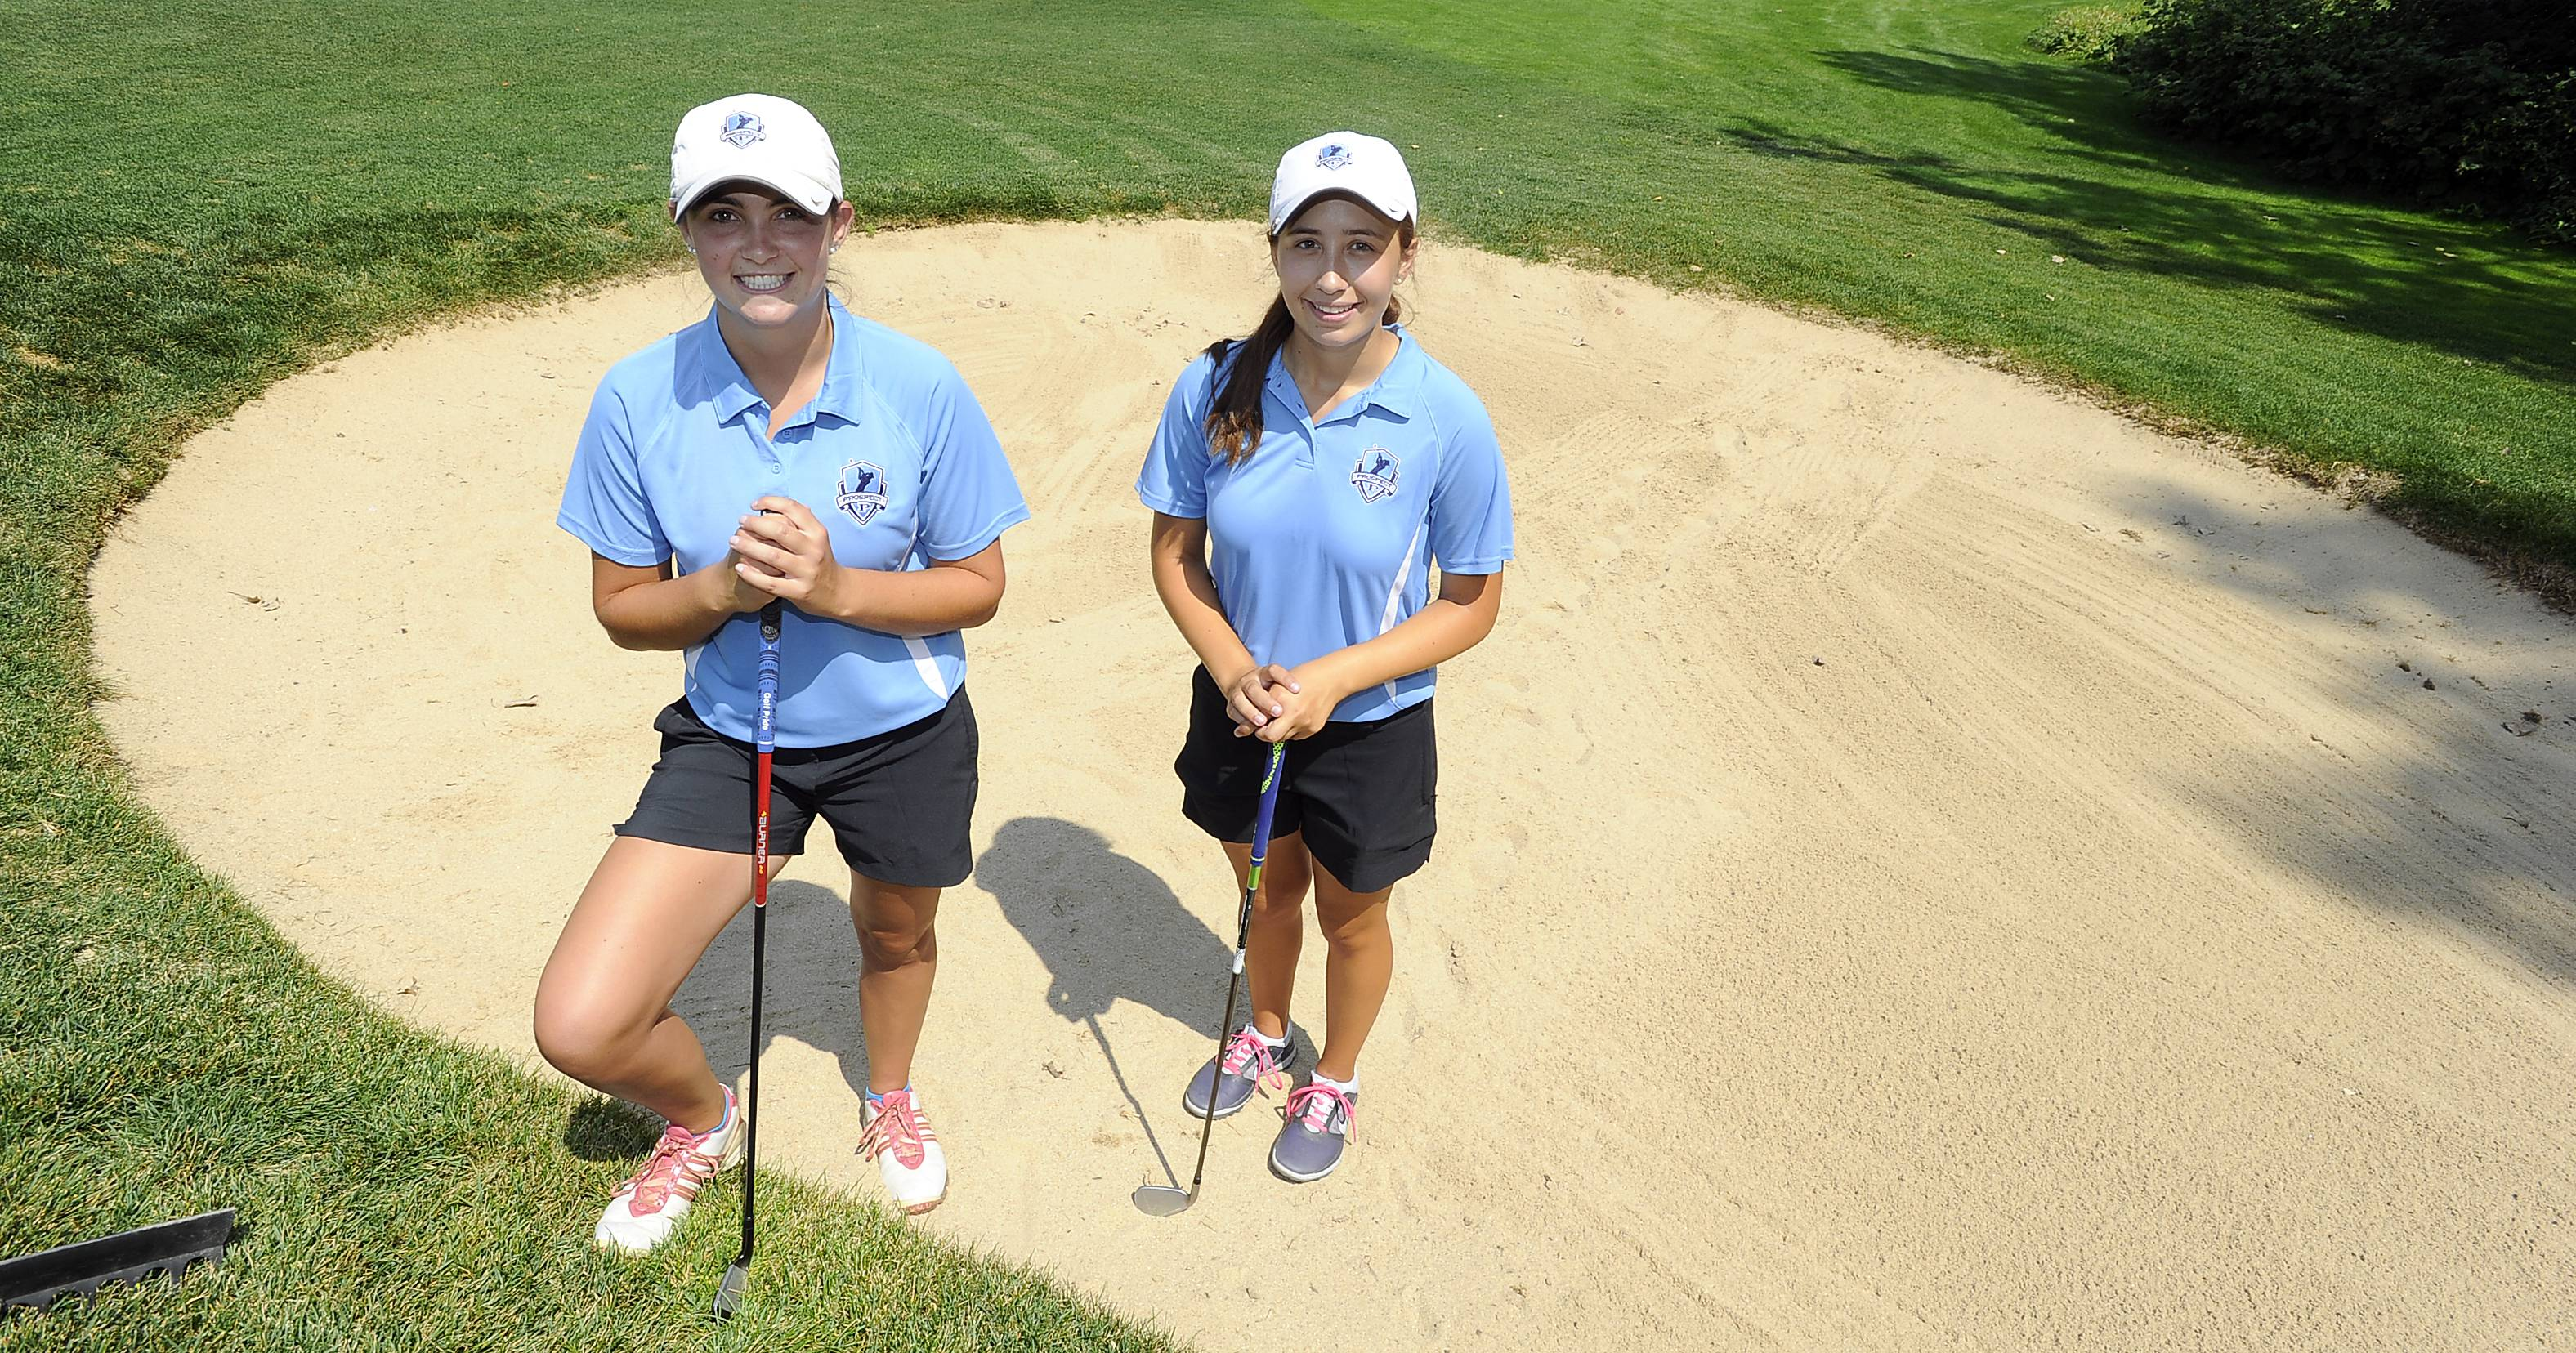 Defending state champ Prospect is looking to extend its recent string of excellent seasons with Isabella Flack, right, and Kacie O'Donnell.